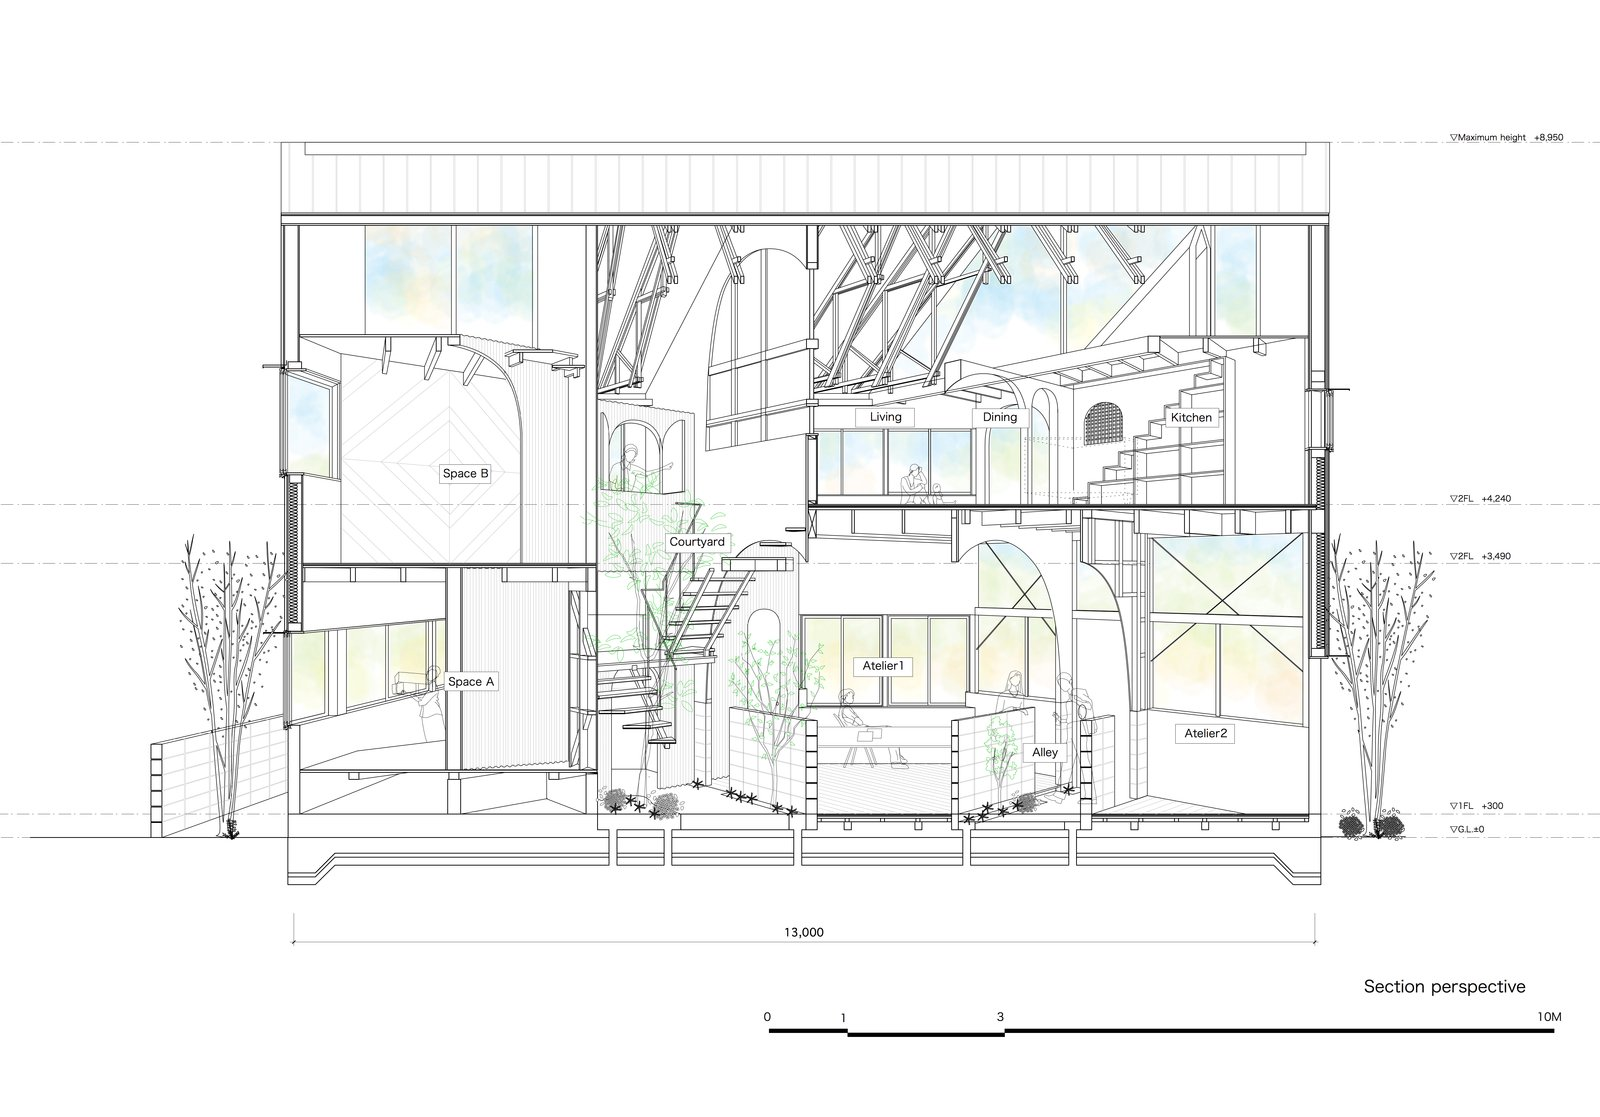 Sectional plan  Photo 17 of 17 in This Whimsical Home in Japan Encourages Play and Exploration